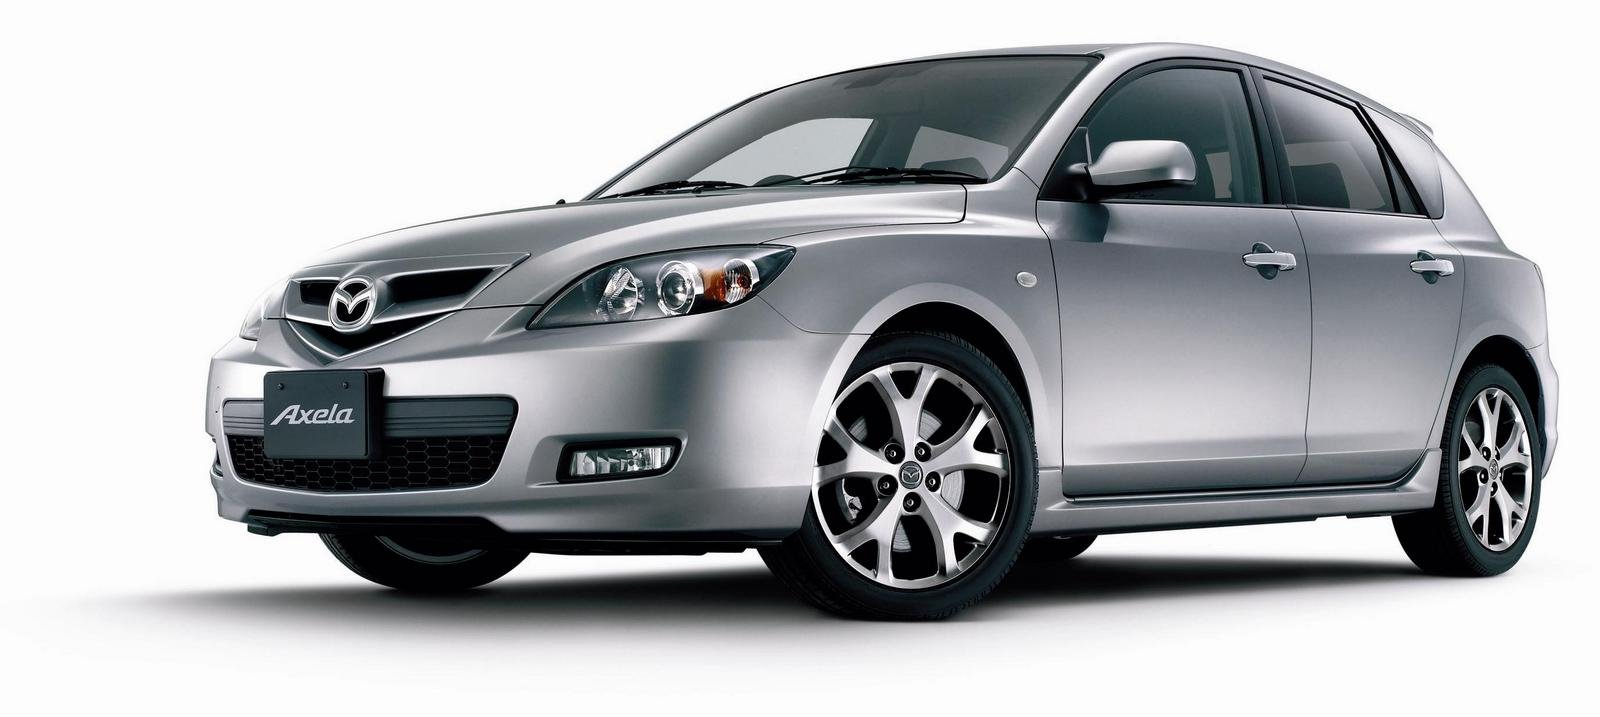 2007 mazda axela sport review top speed. Black Bedroom Furniture Sets. Home Design Ideas